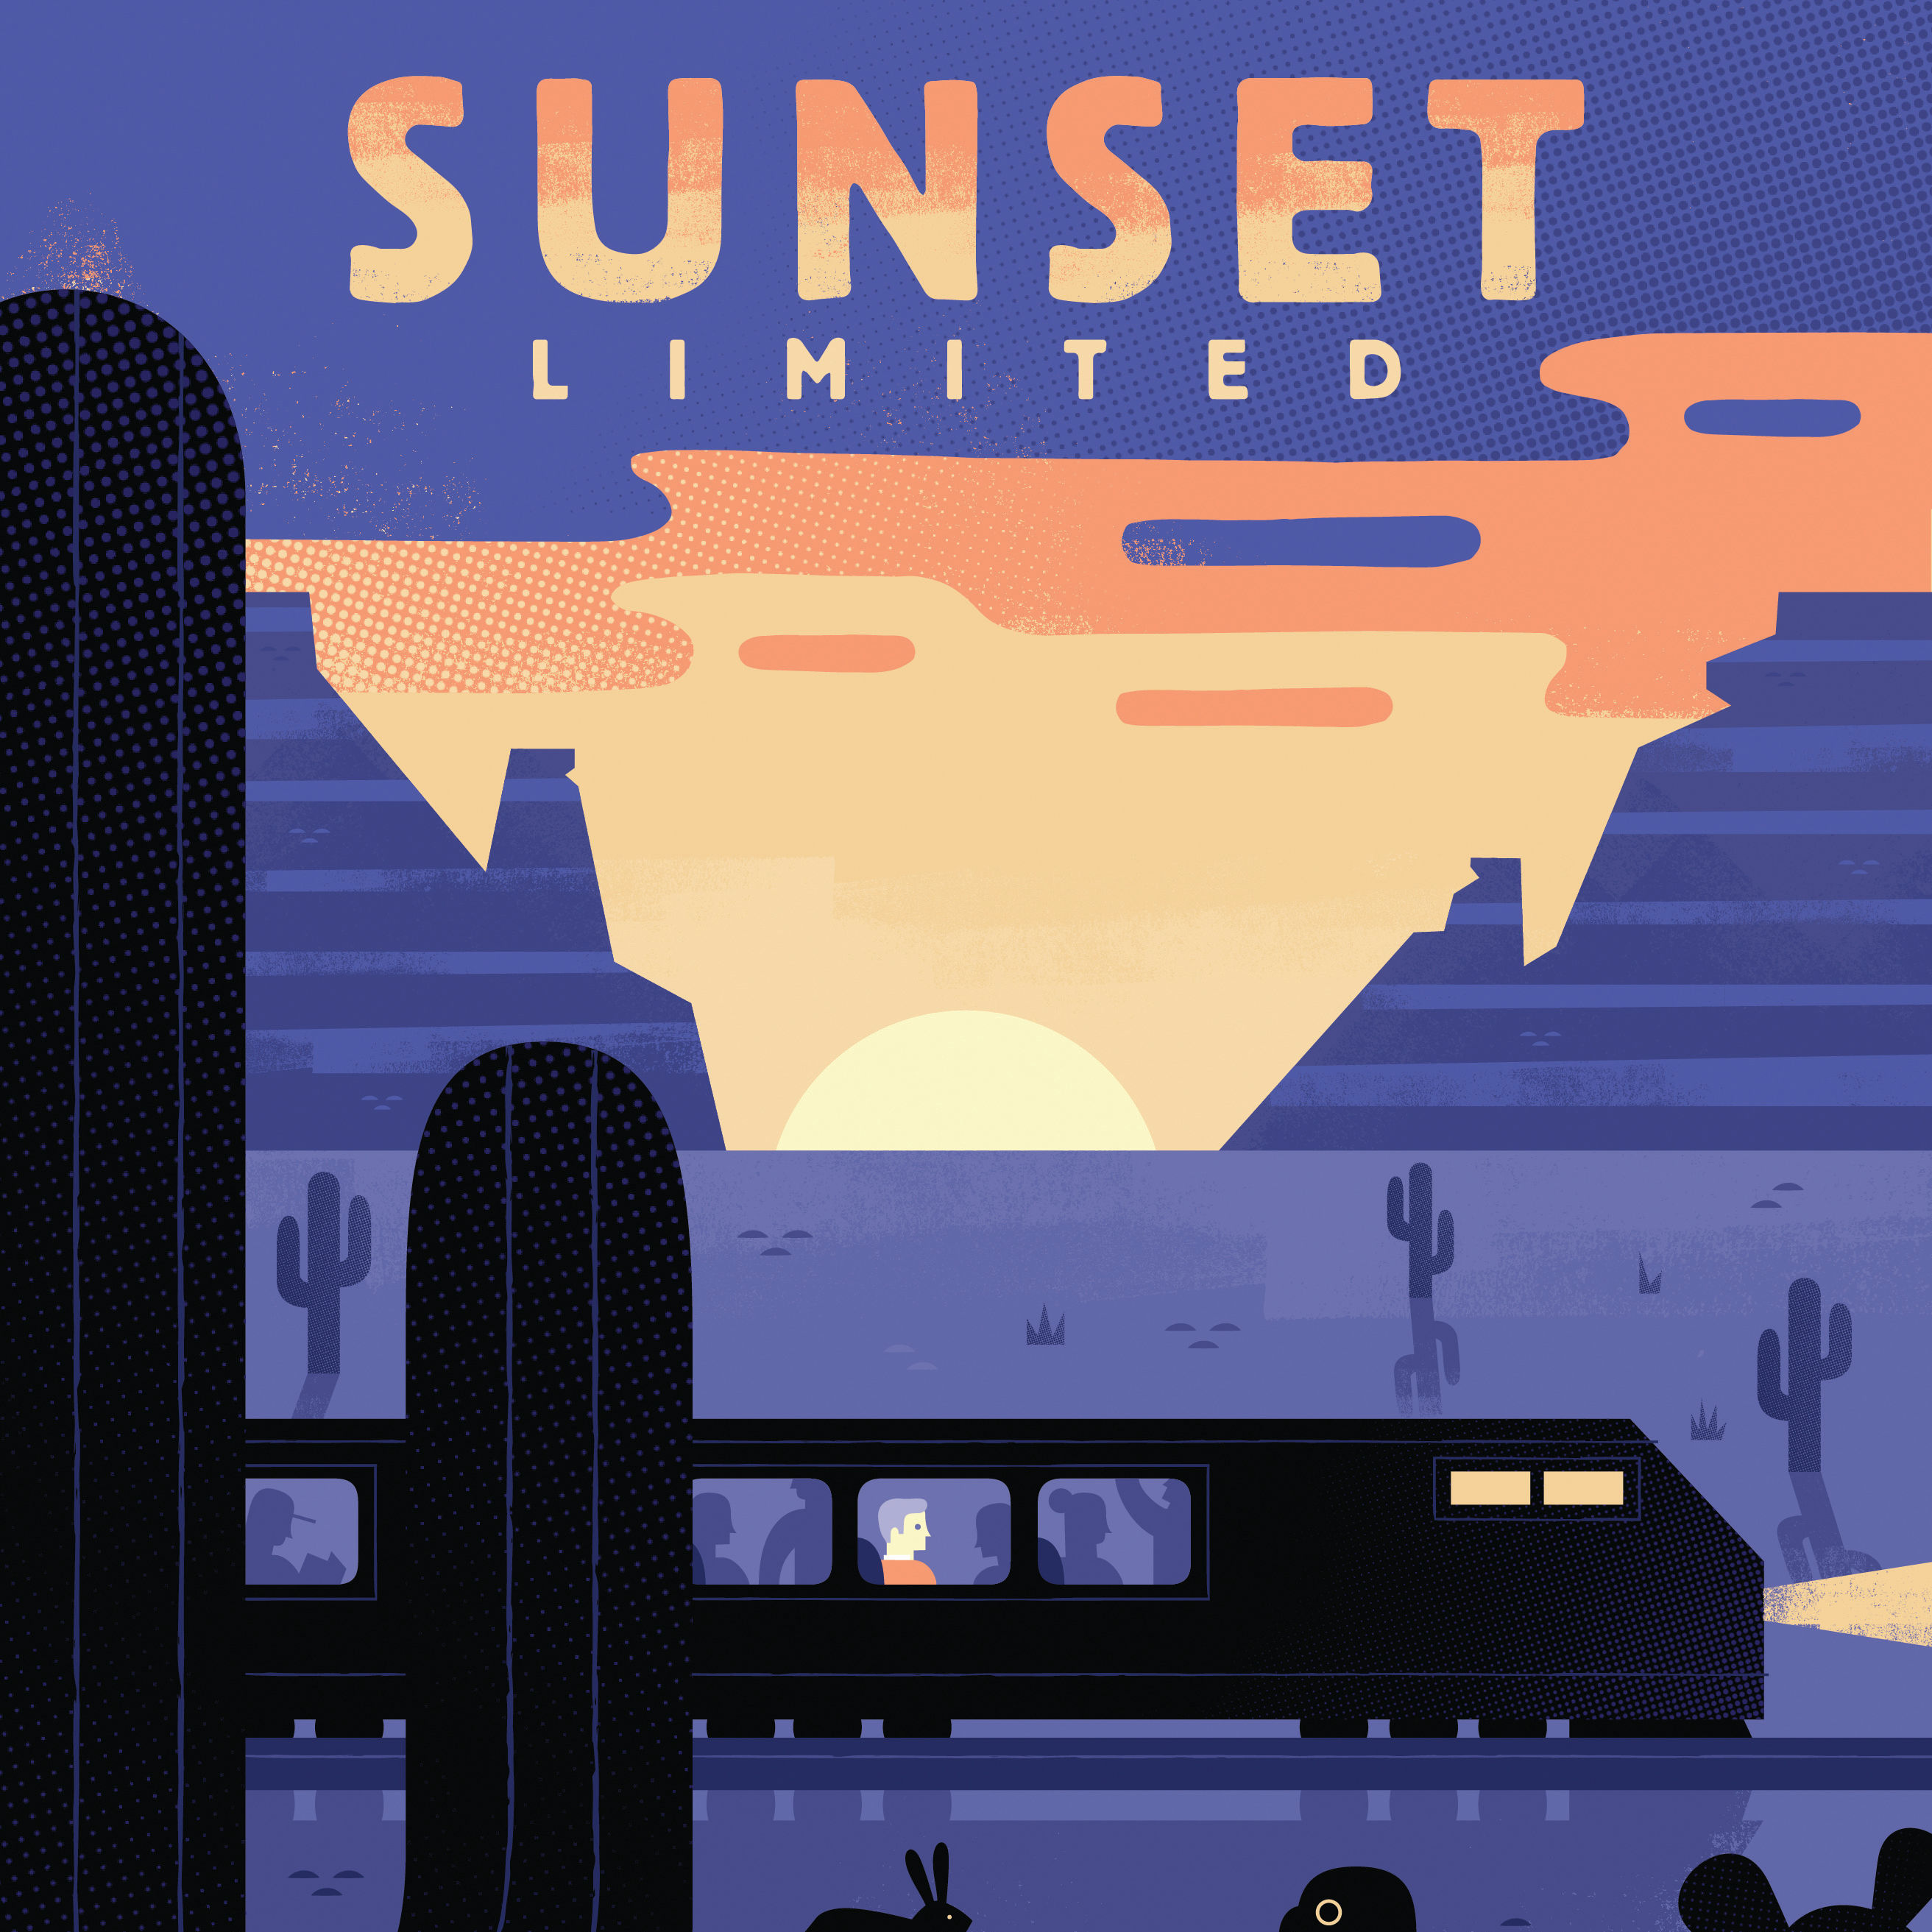 0317 open road sunset limited poster amtrak journey travel ovsh13